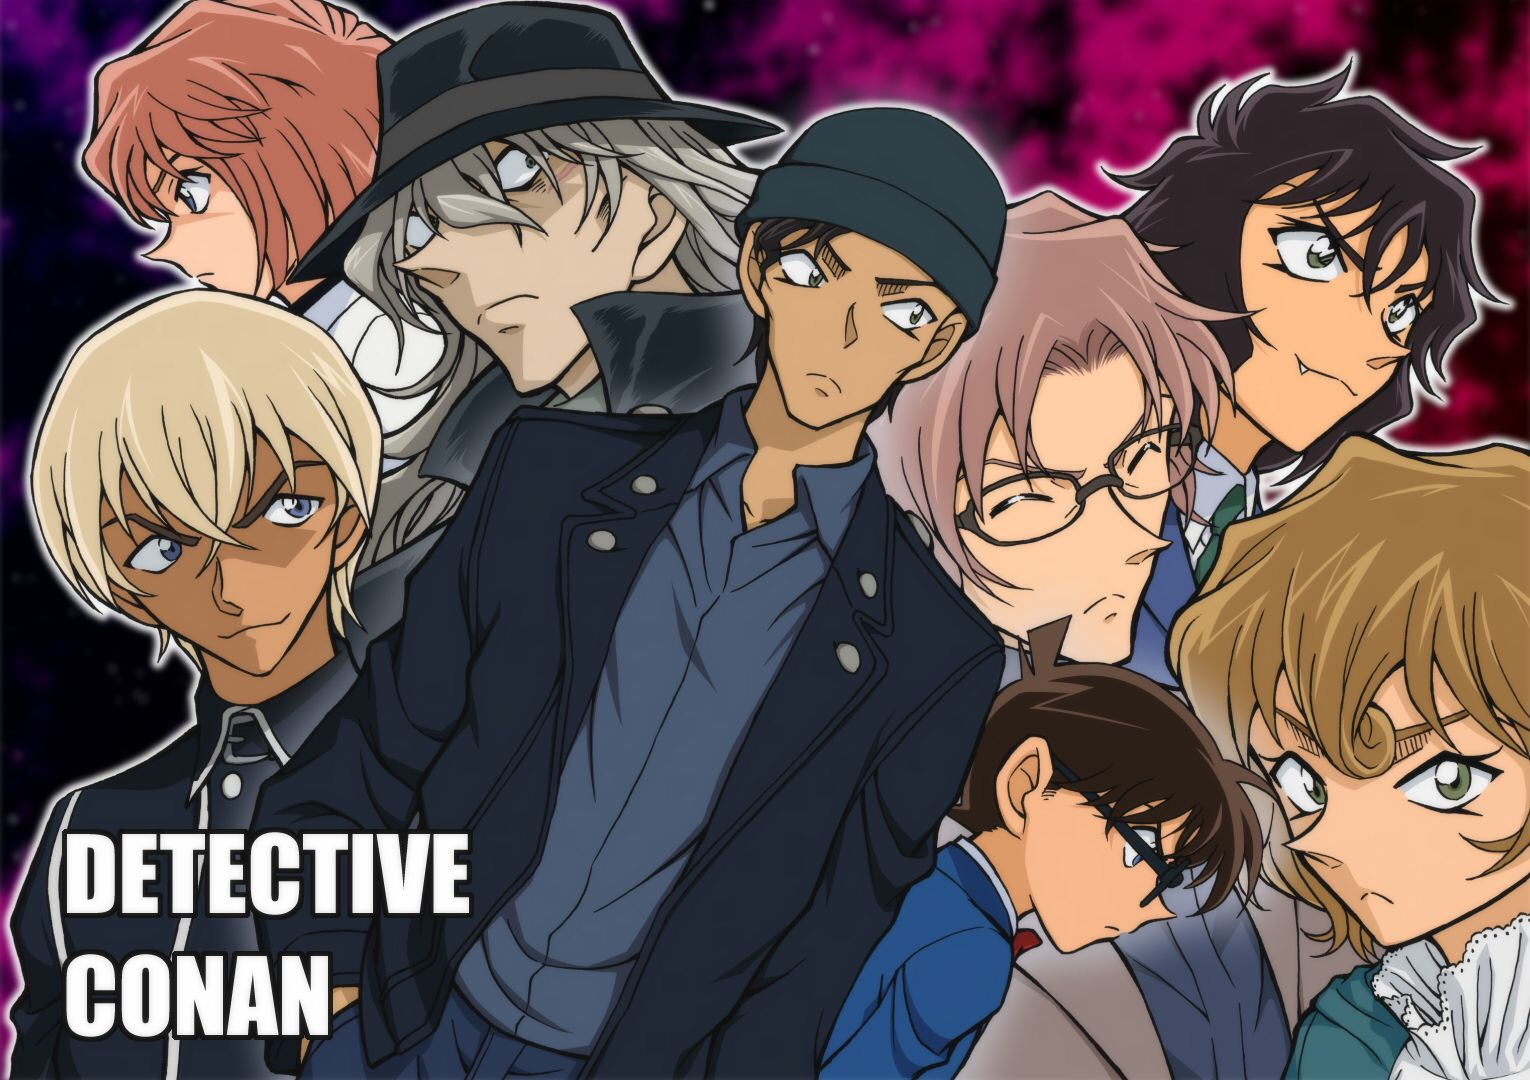 Detective Conan Mysterious Characters (1) Detective